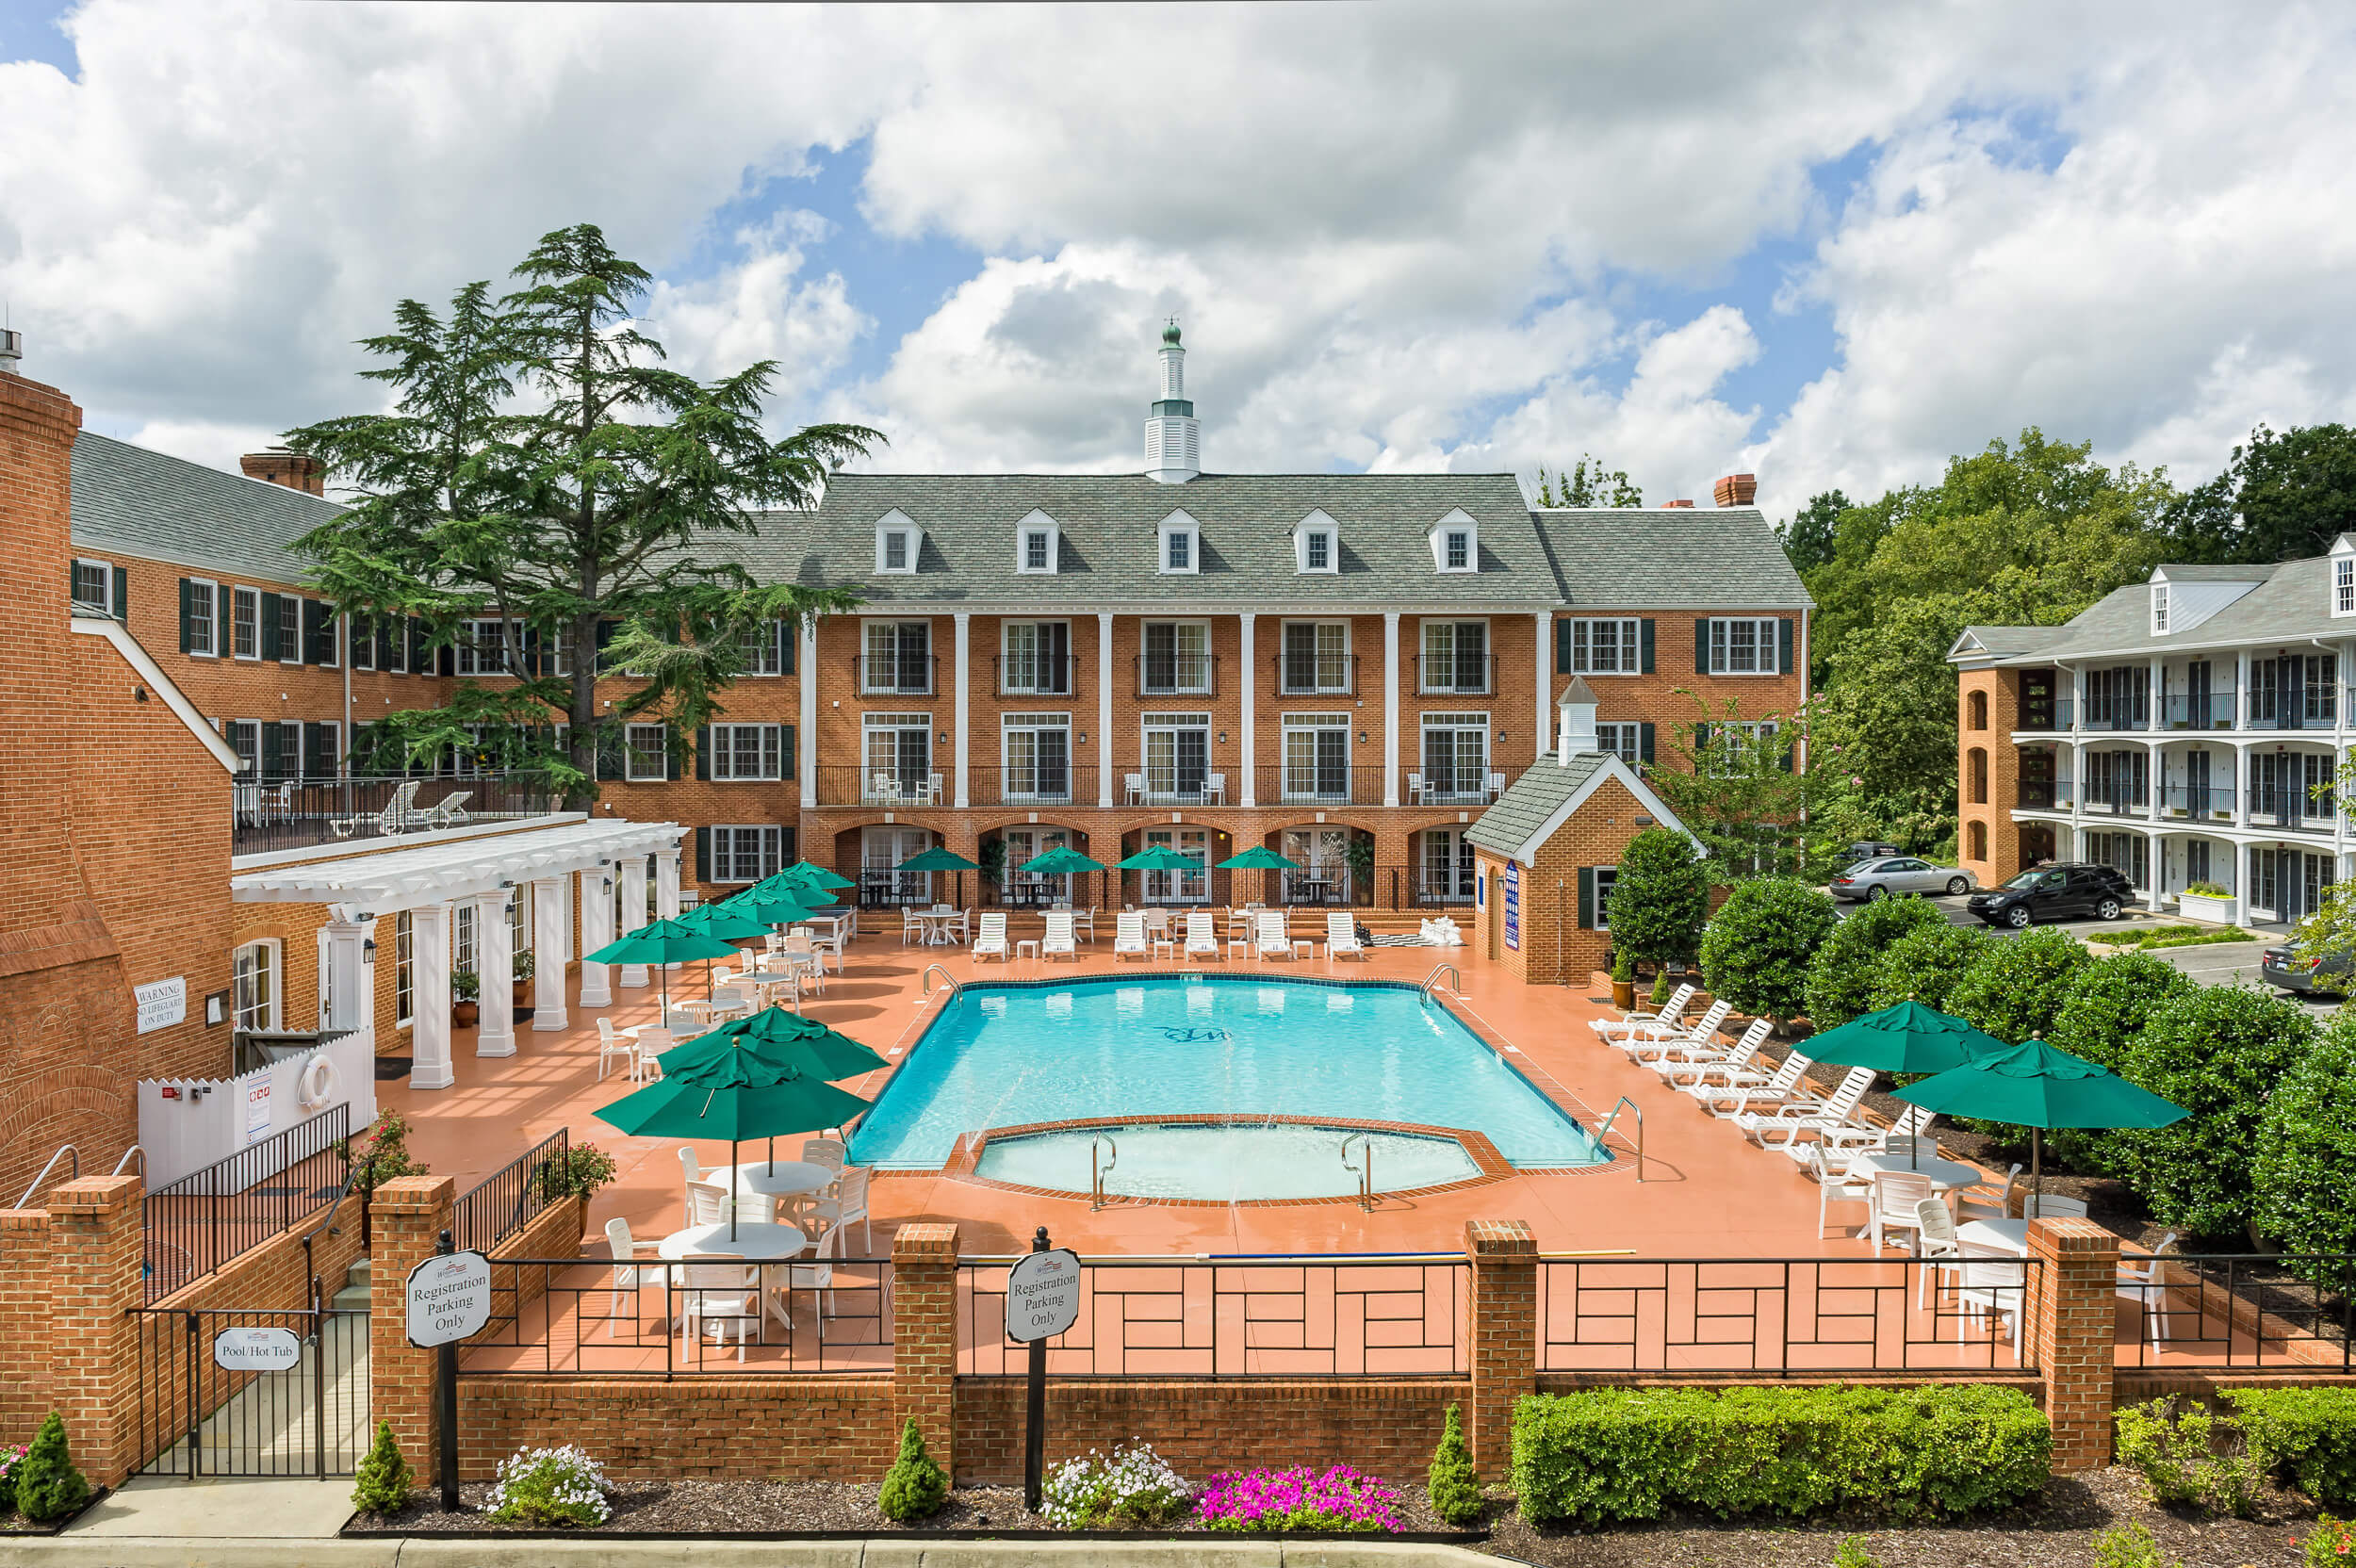 Colonial-style resort building with heated outdoor pool | Westgate Historic Williamsburg Resort